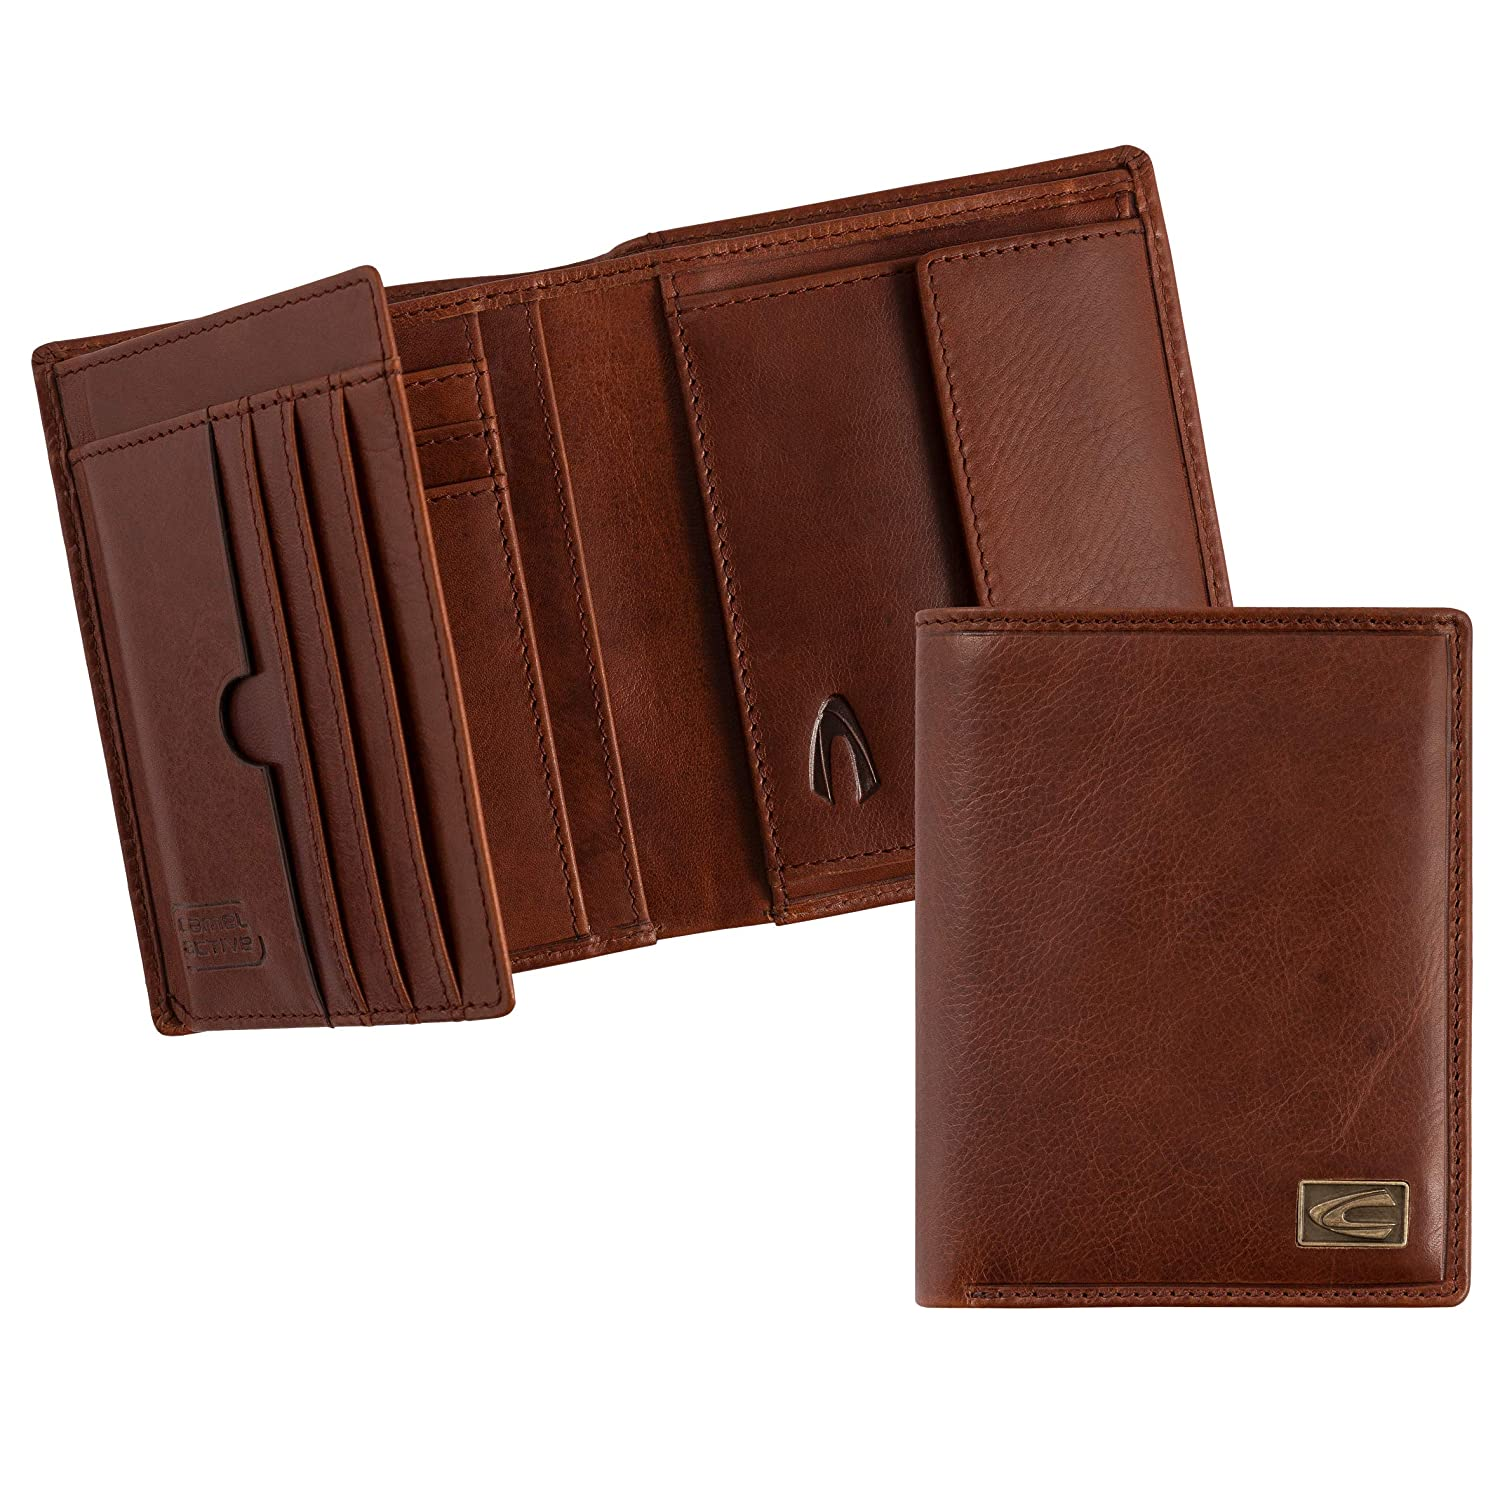 camel active Monedero, coñac (Marrón) - 276 703: Amazon.es ...